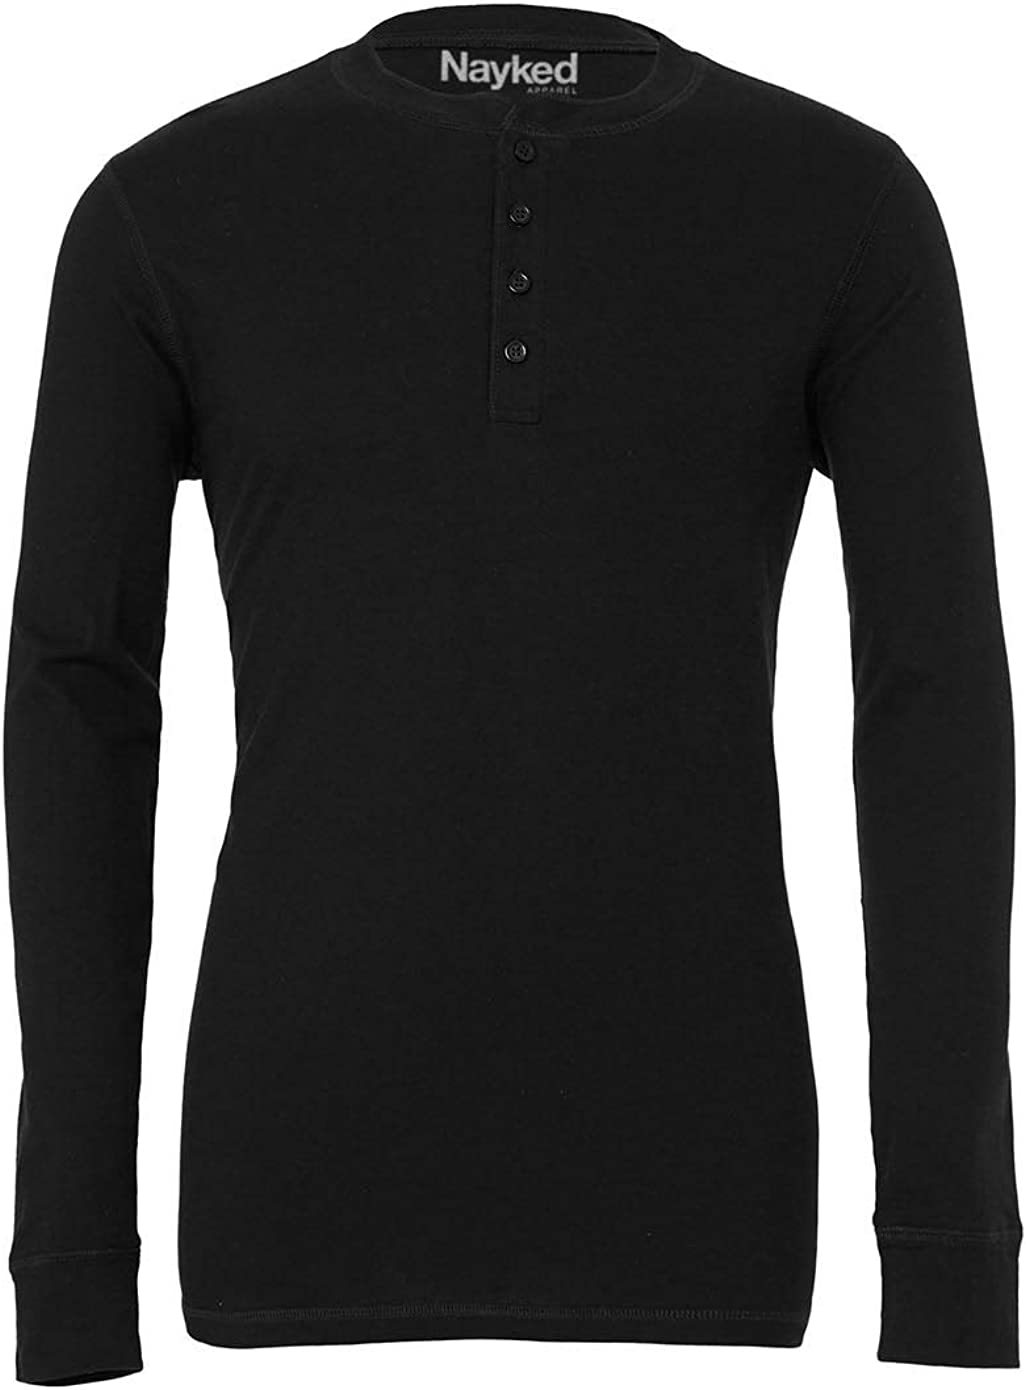 Nayked Apparel Men's Ridiculously Soft Henley